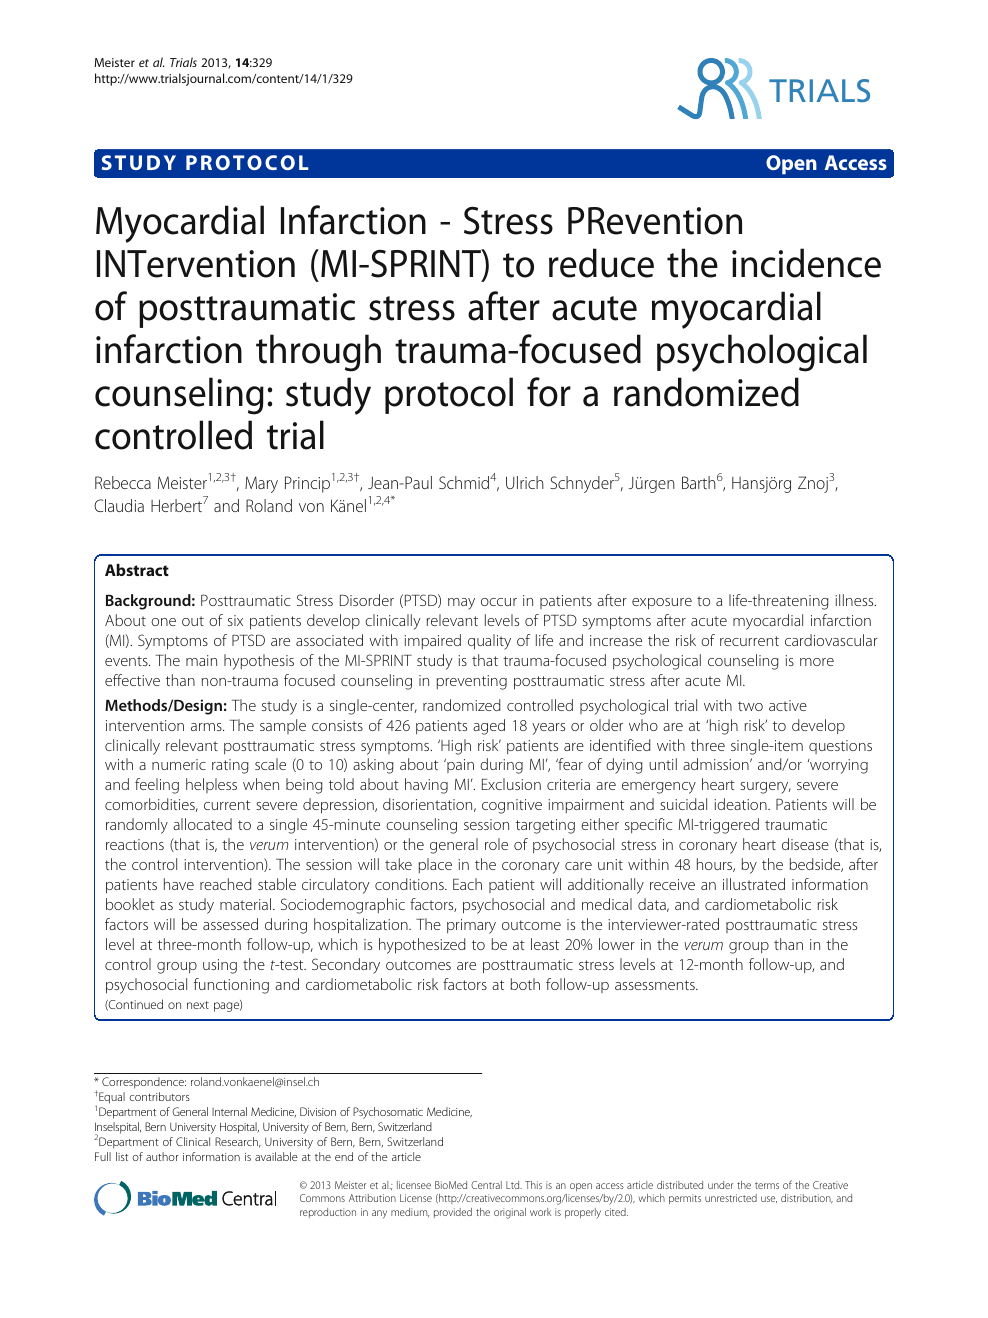 Myocardial Infarction - Stress PRevention INTervention (MI